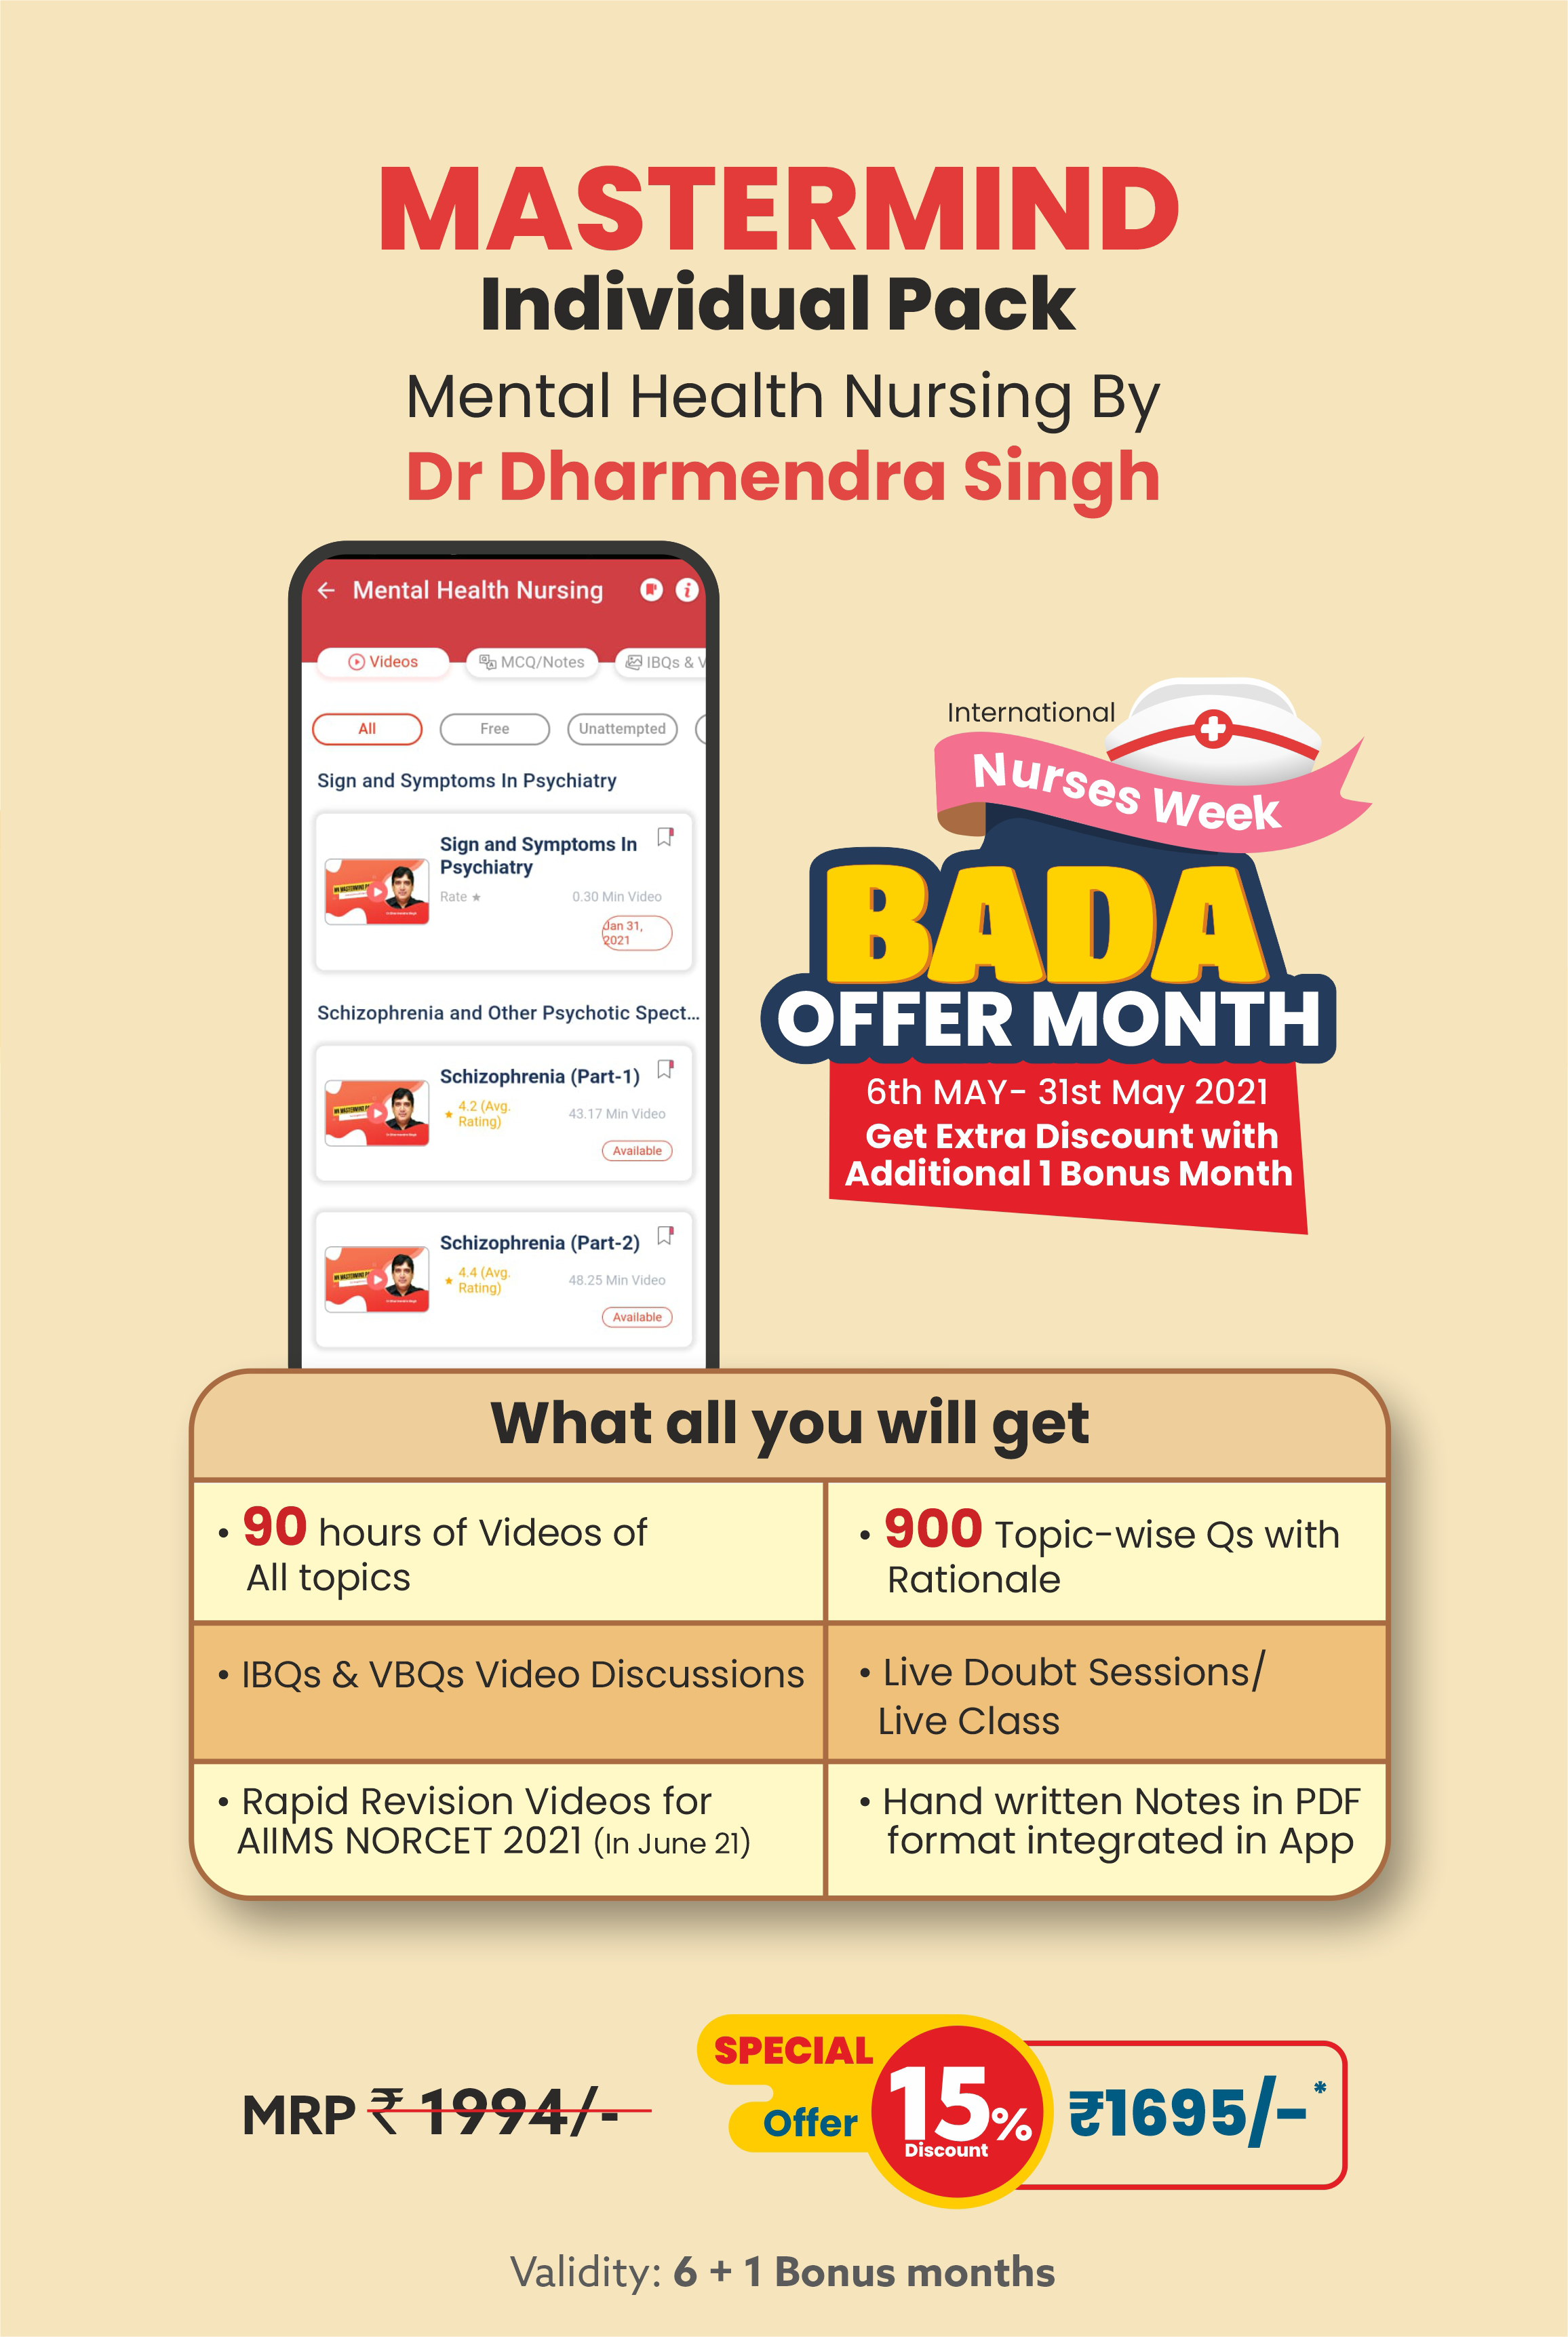 Nurses week - Bada Offer Month Individual Pack-Dr Dharmendra Singh